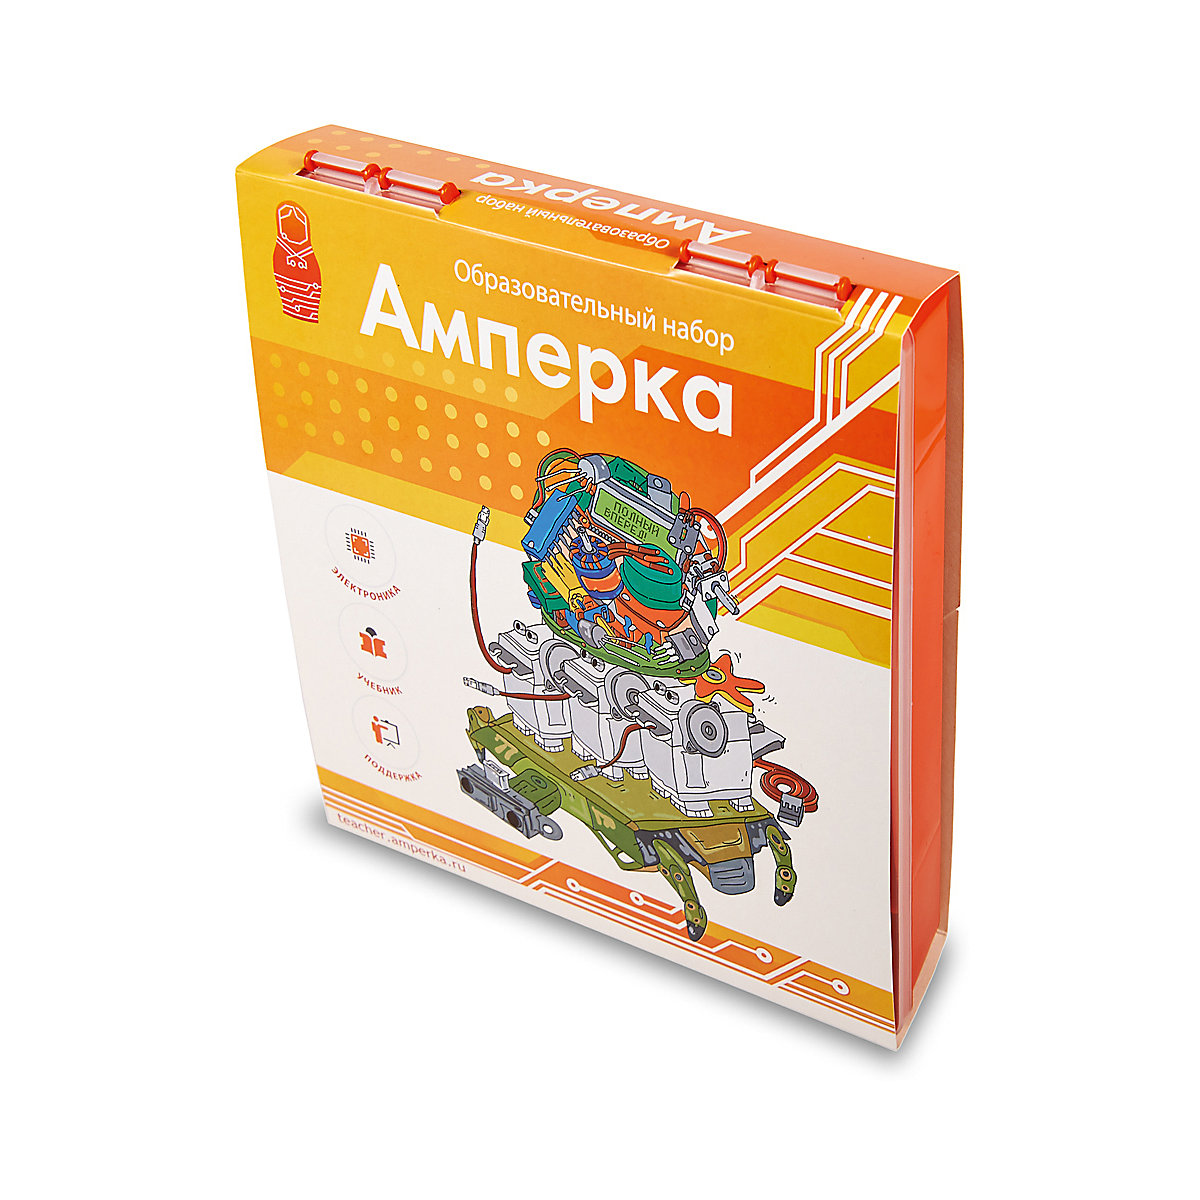 AMPERKA Blocks 5427690 toys for boys girls building construction educational developing toy game play team modeling boy girl in stock lepin 20027 technic mechnical series the container truck educational building blocks bricks children toys clone 8052